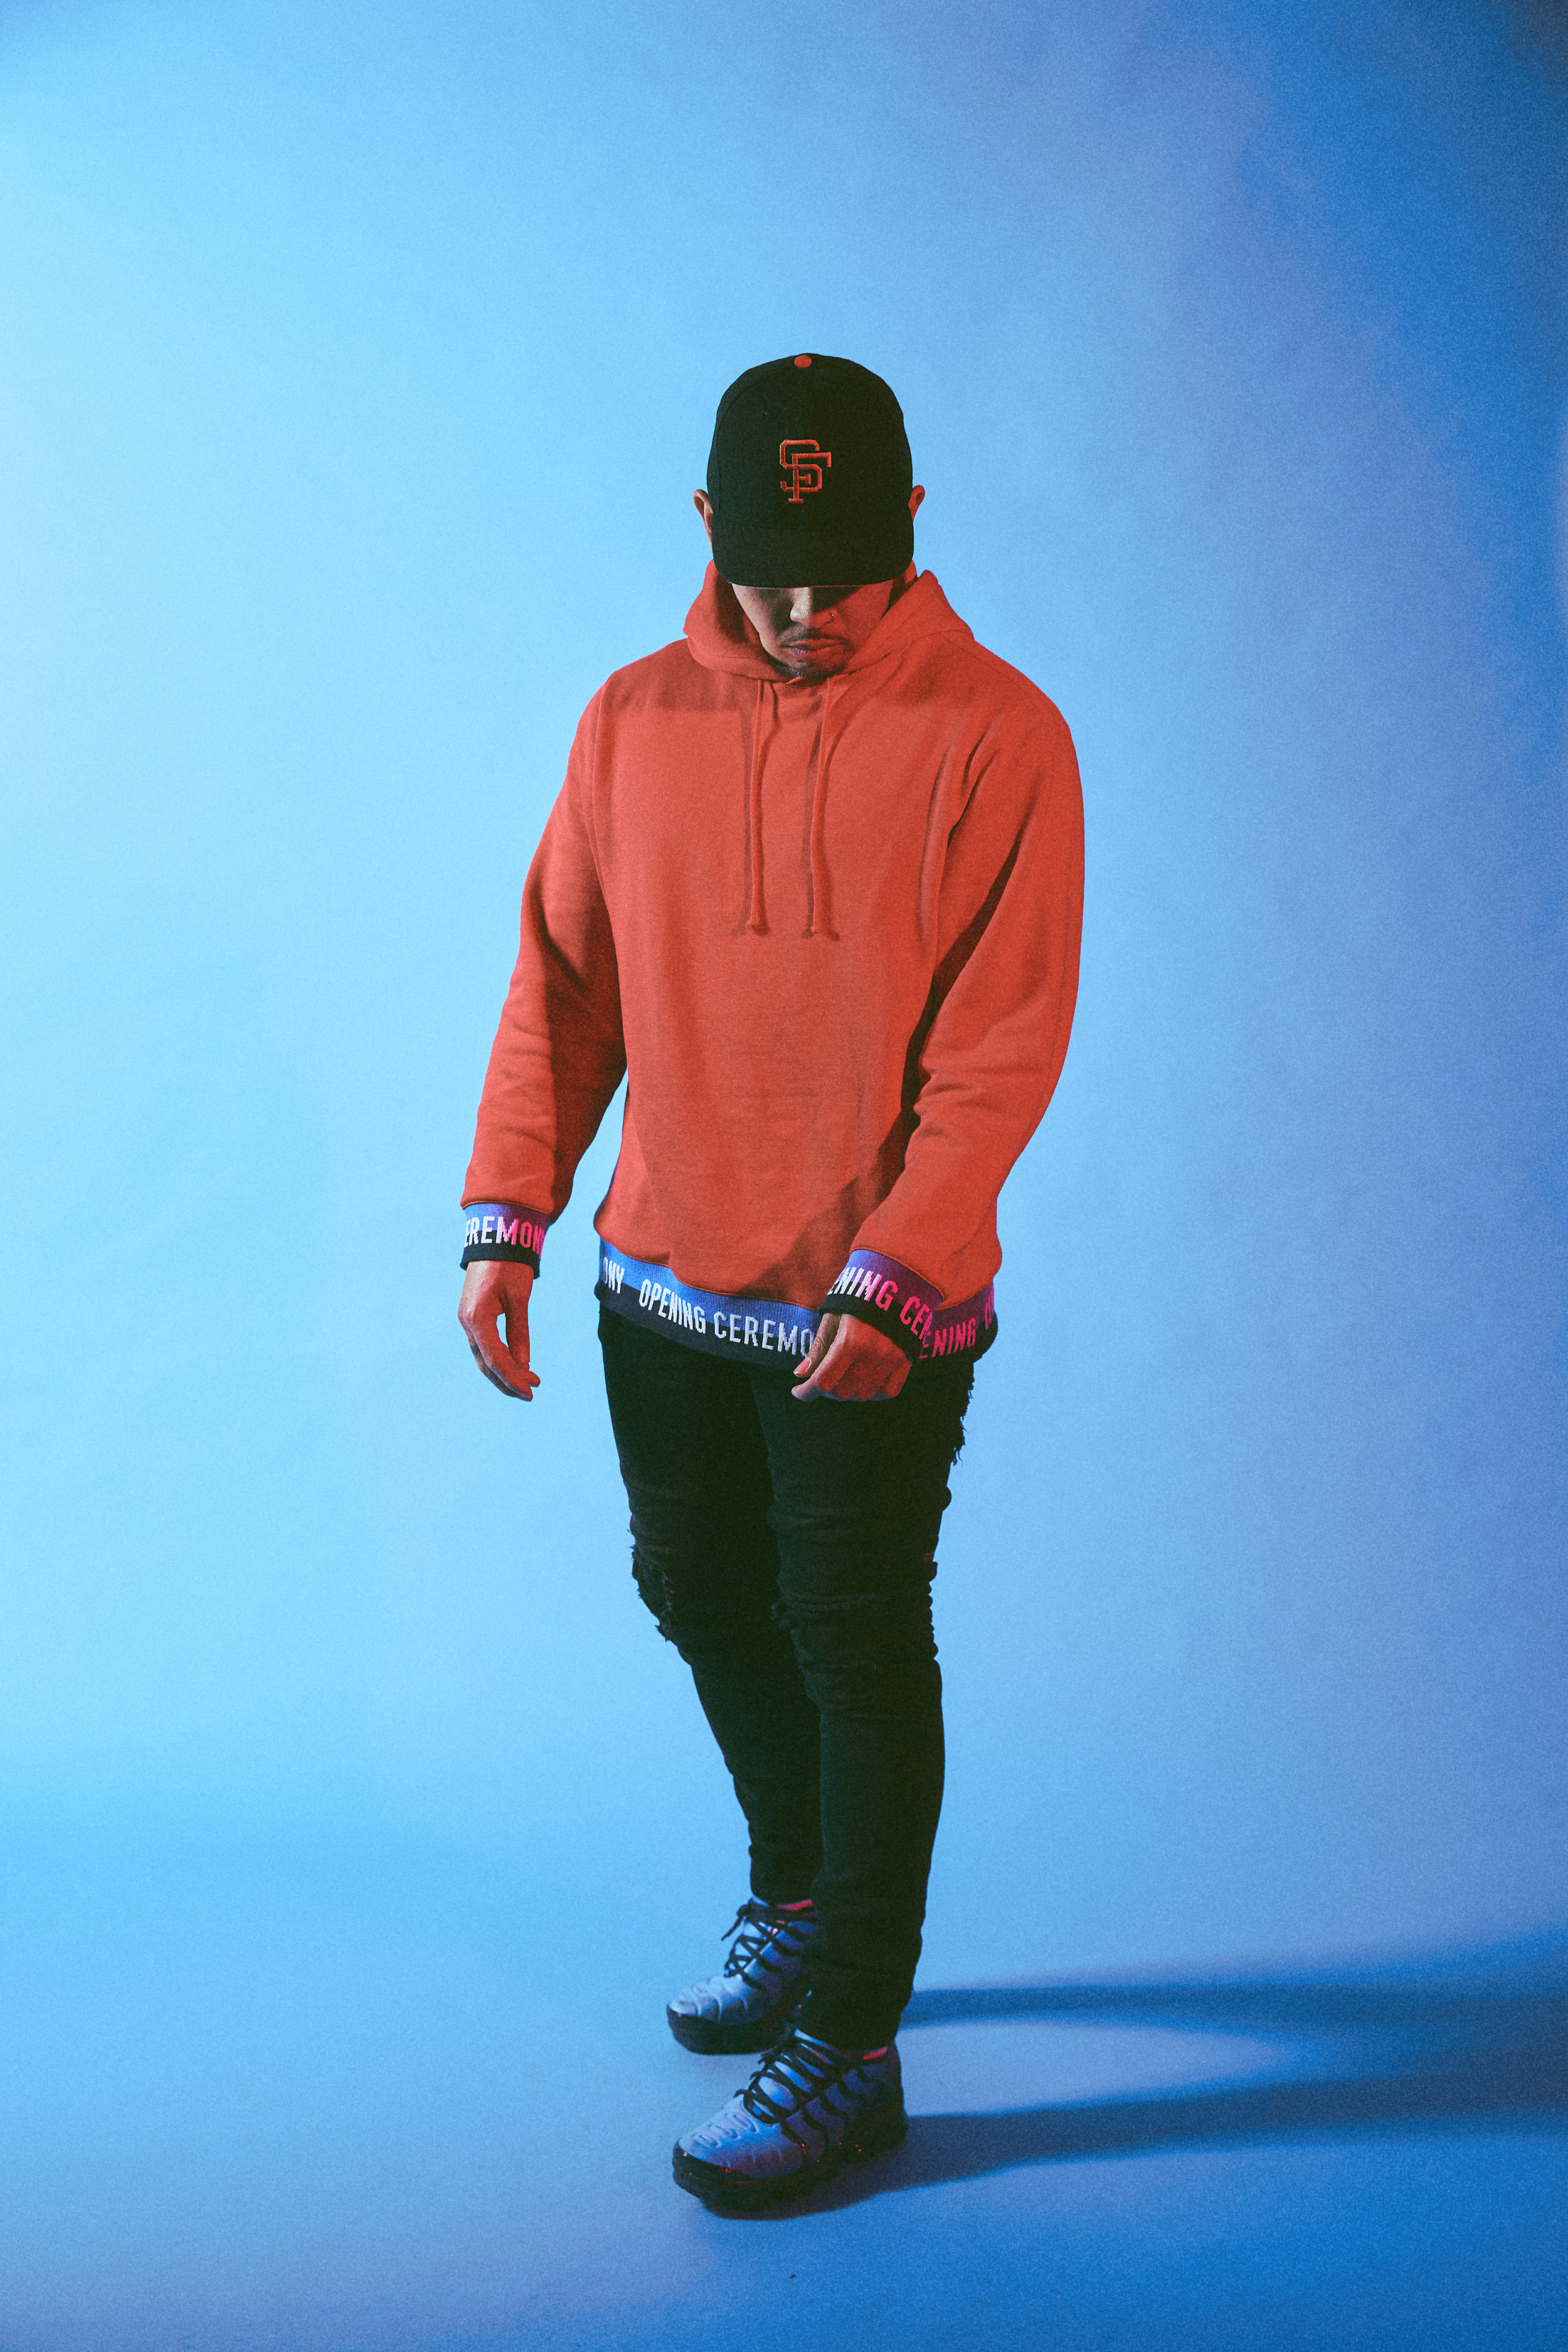 P-Lo - P-Lo is a founding member of the Bay Area collective HBK Gang (Iamsu!, Sage The Gemini, Kehlani and more). As a solo artist, P-Lo has been steadily on the rise, releasing projects that continue to push him further into the spotlight. As a producer, P-Lo has made hits with Yo Gotti (